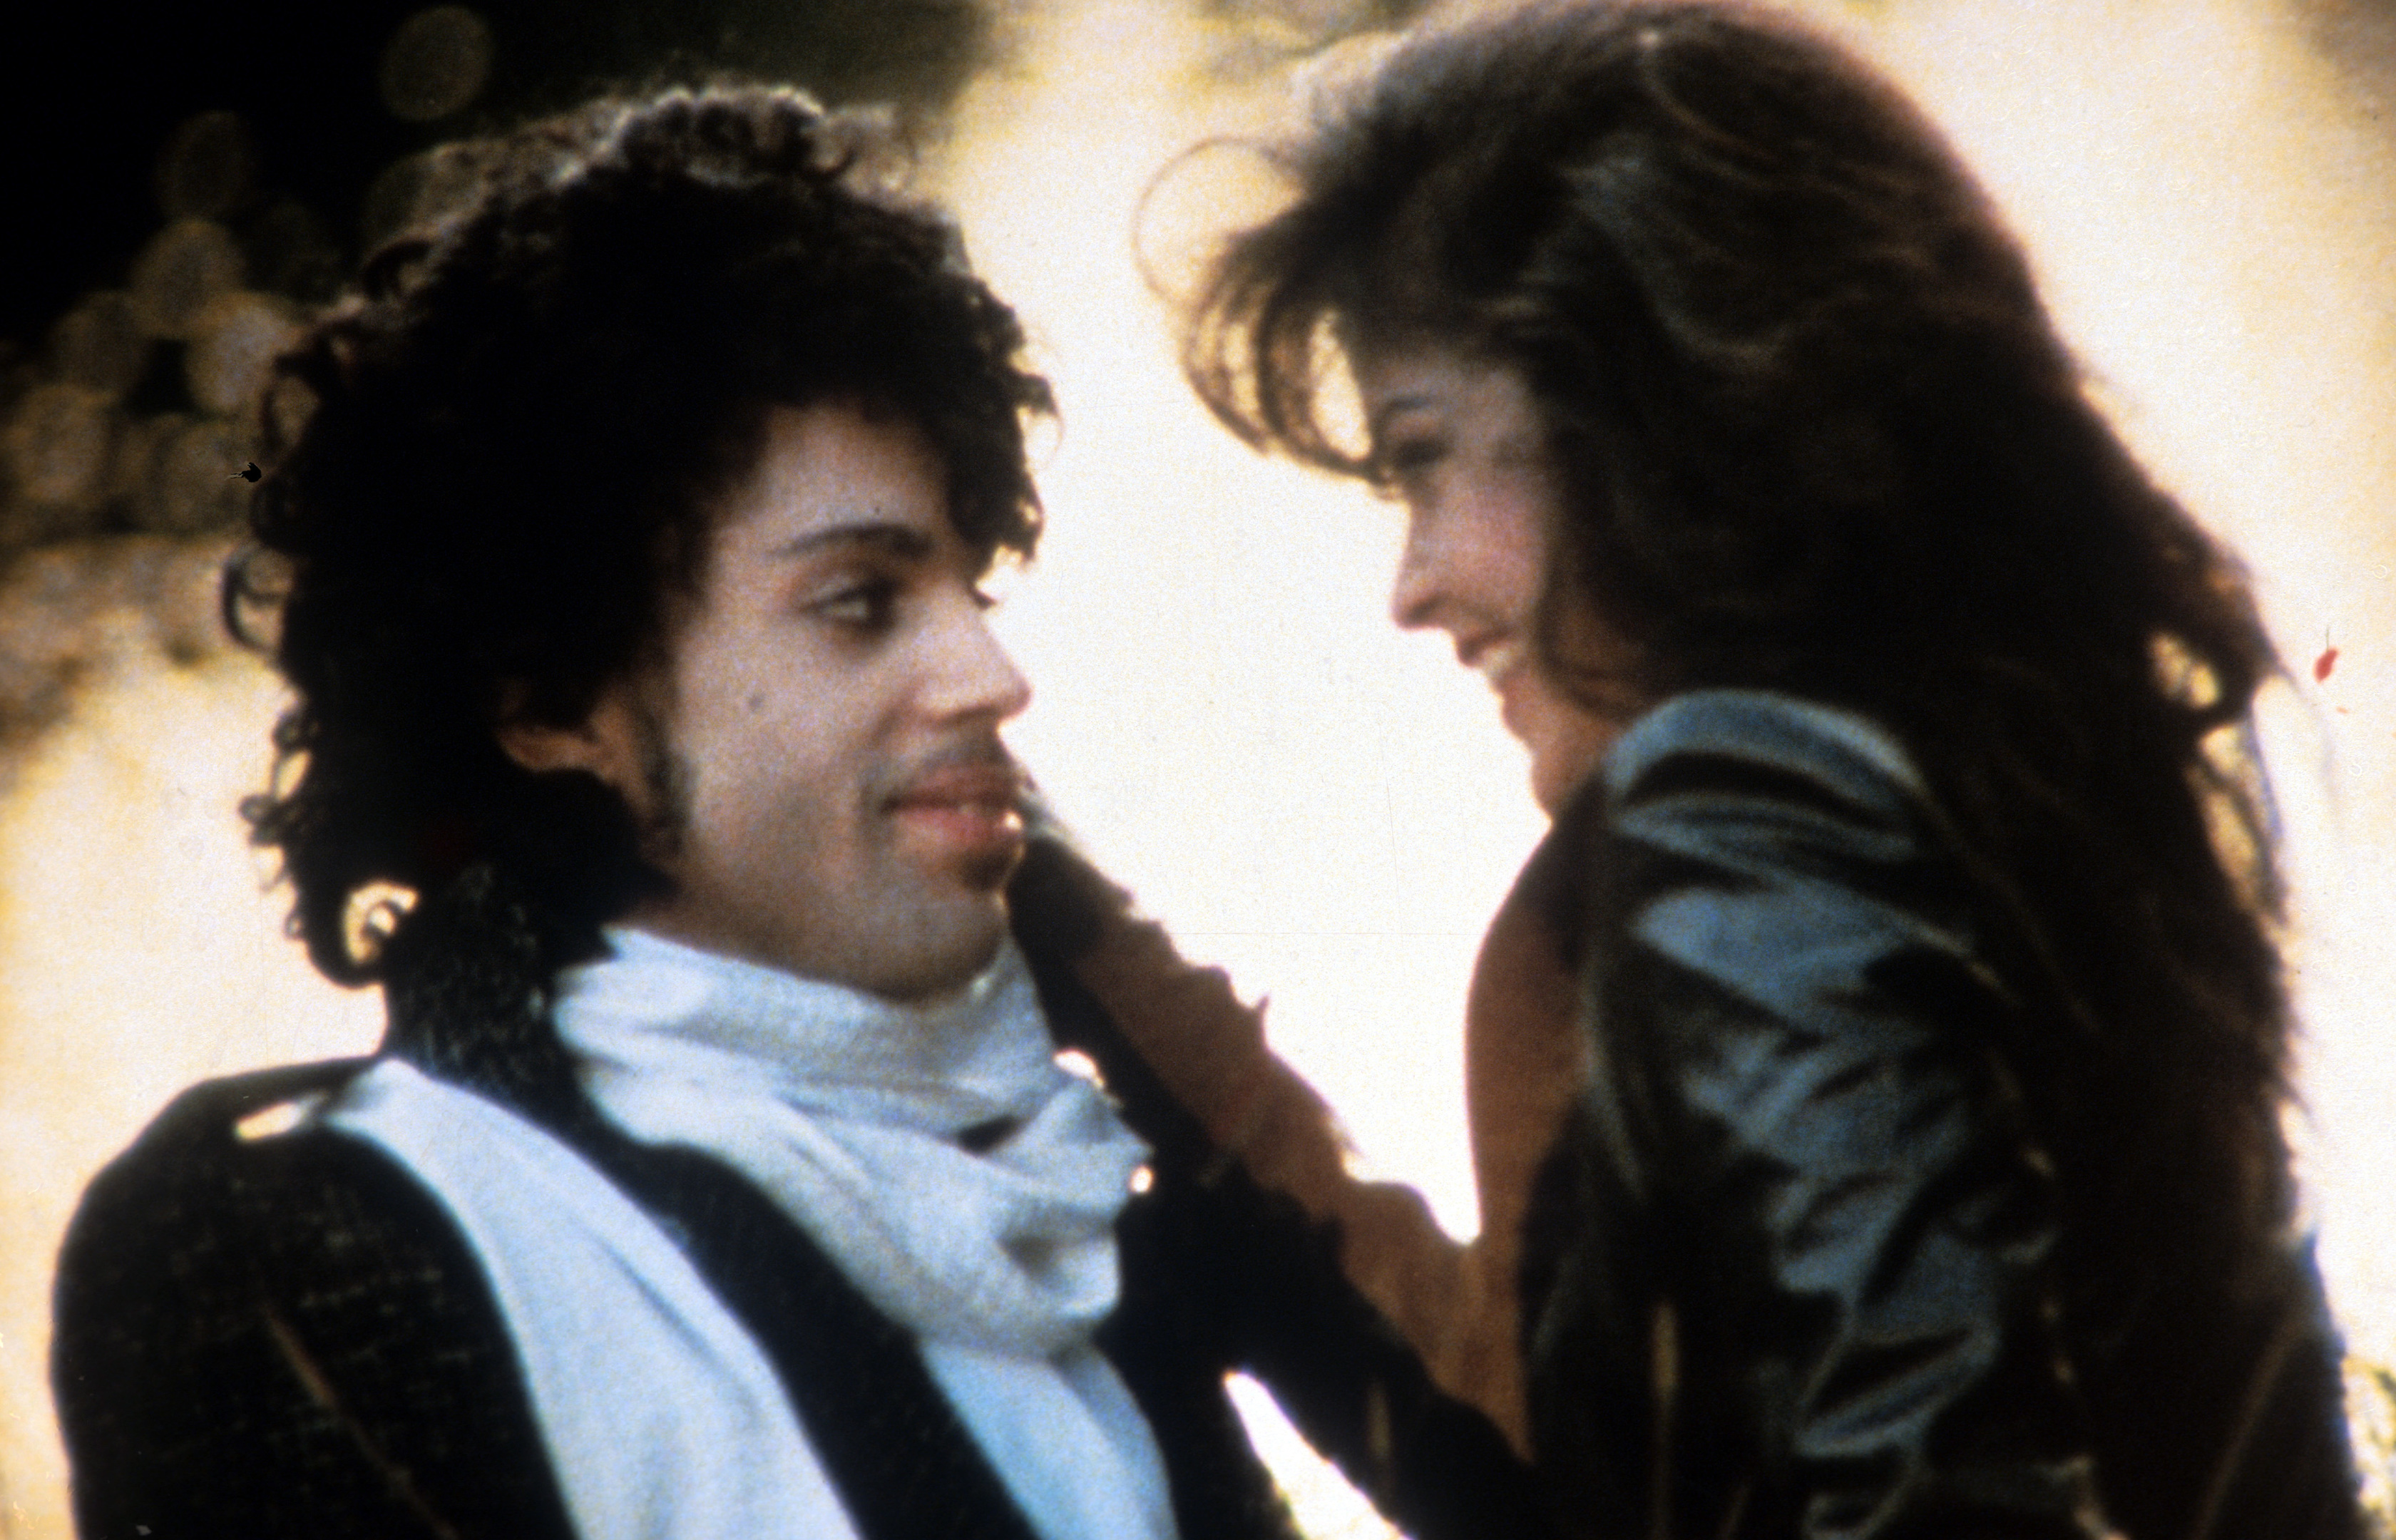 Prince embraces Apollonia Kotero in a scene from 'Purple Rain'.